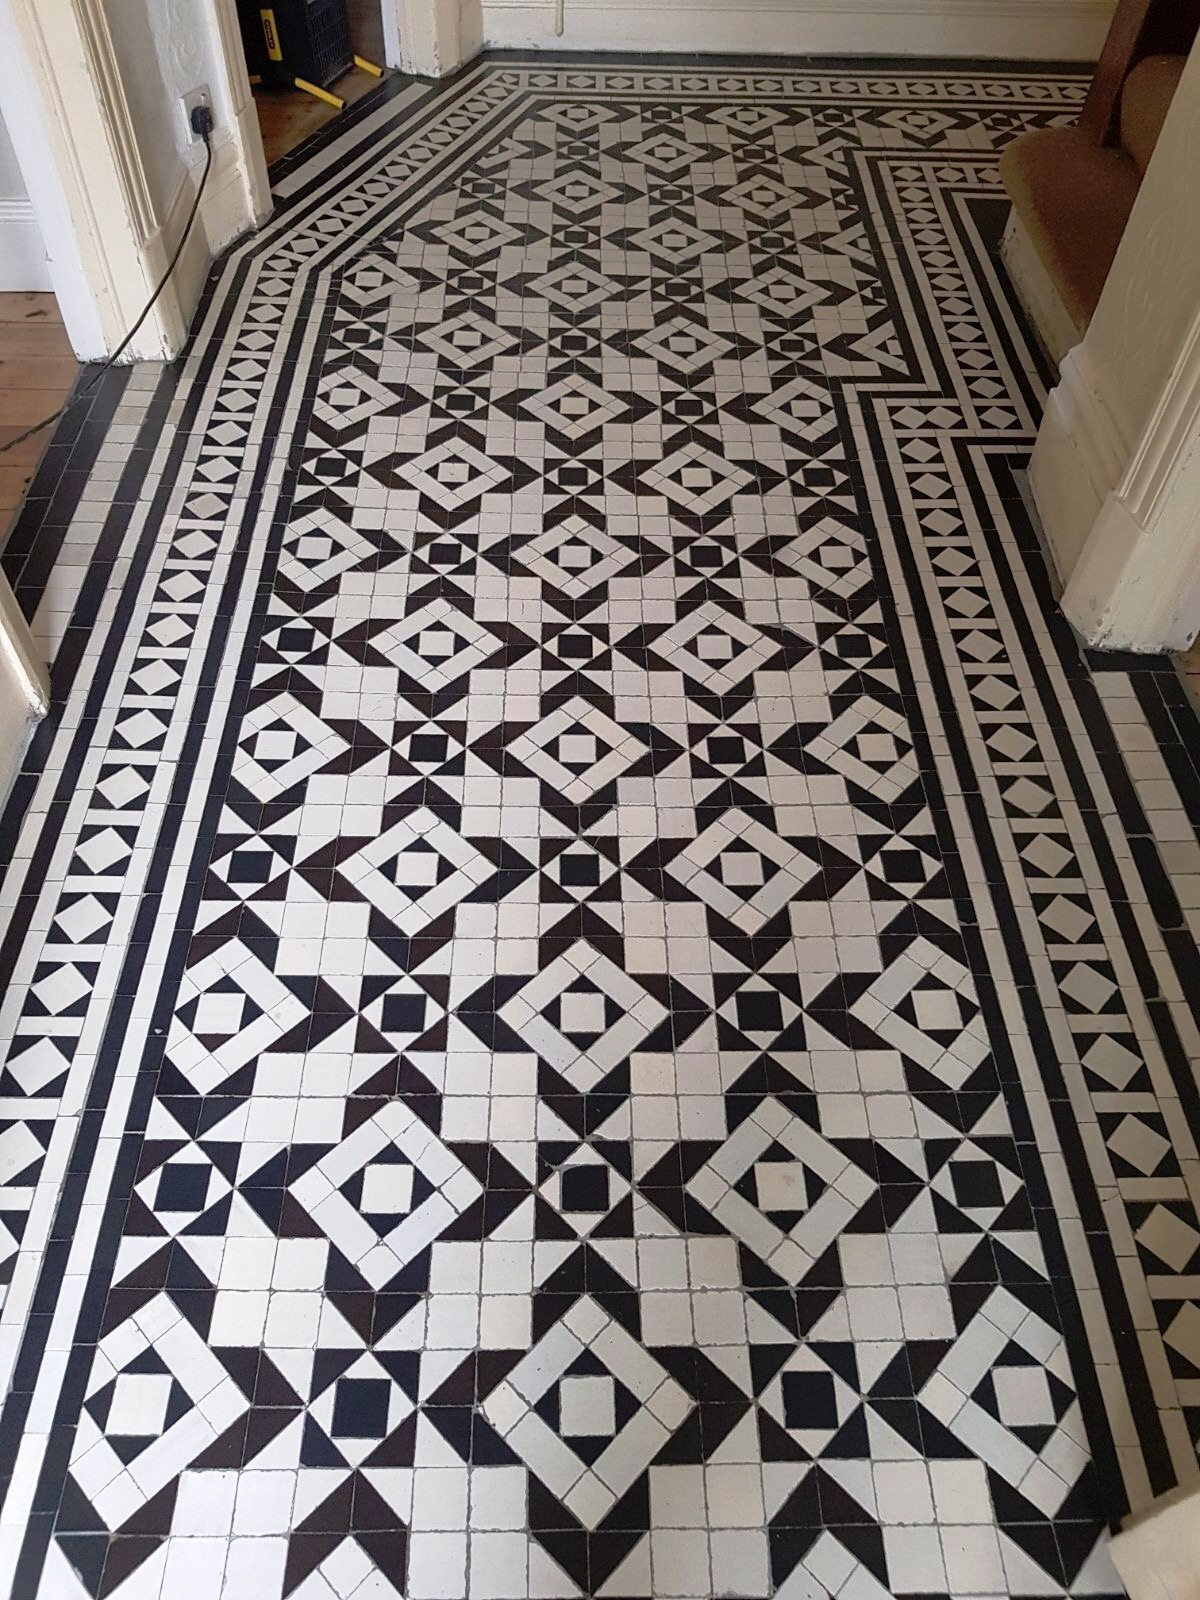 Victorian Tiled Hallway Floor After Full Restoration in Woodford Green